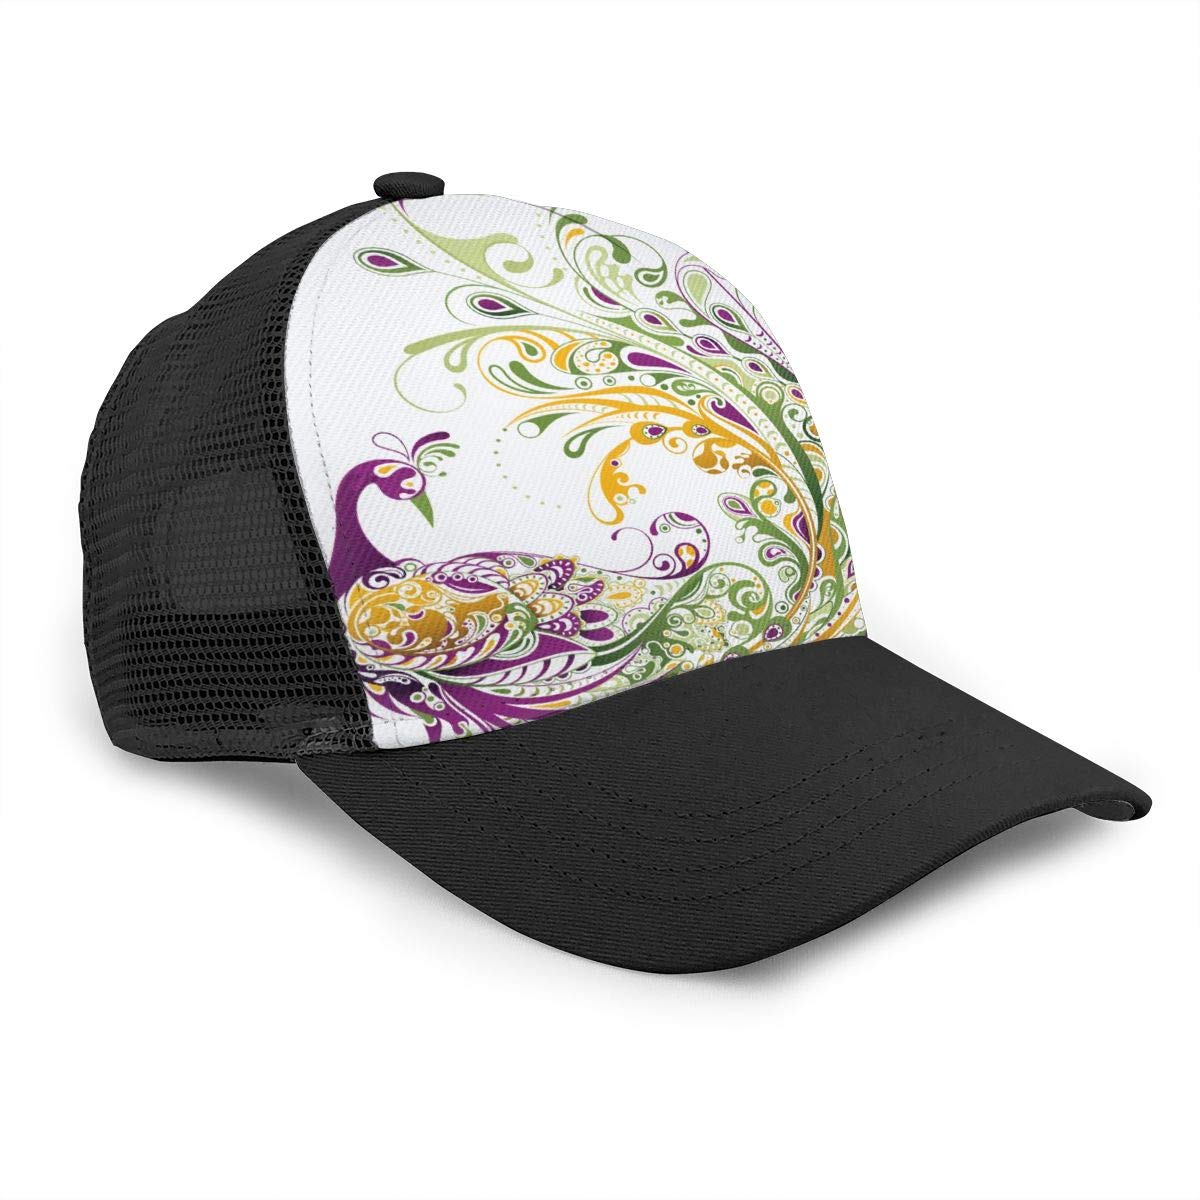 Co23@Cap Mens and Womens The Peacock Spread Its Tail Flat Baseball Hat Plain Trucker Hat for Unisex